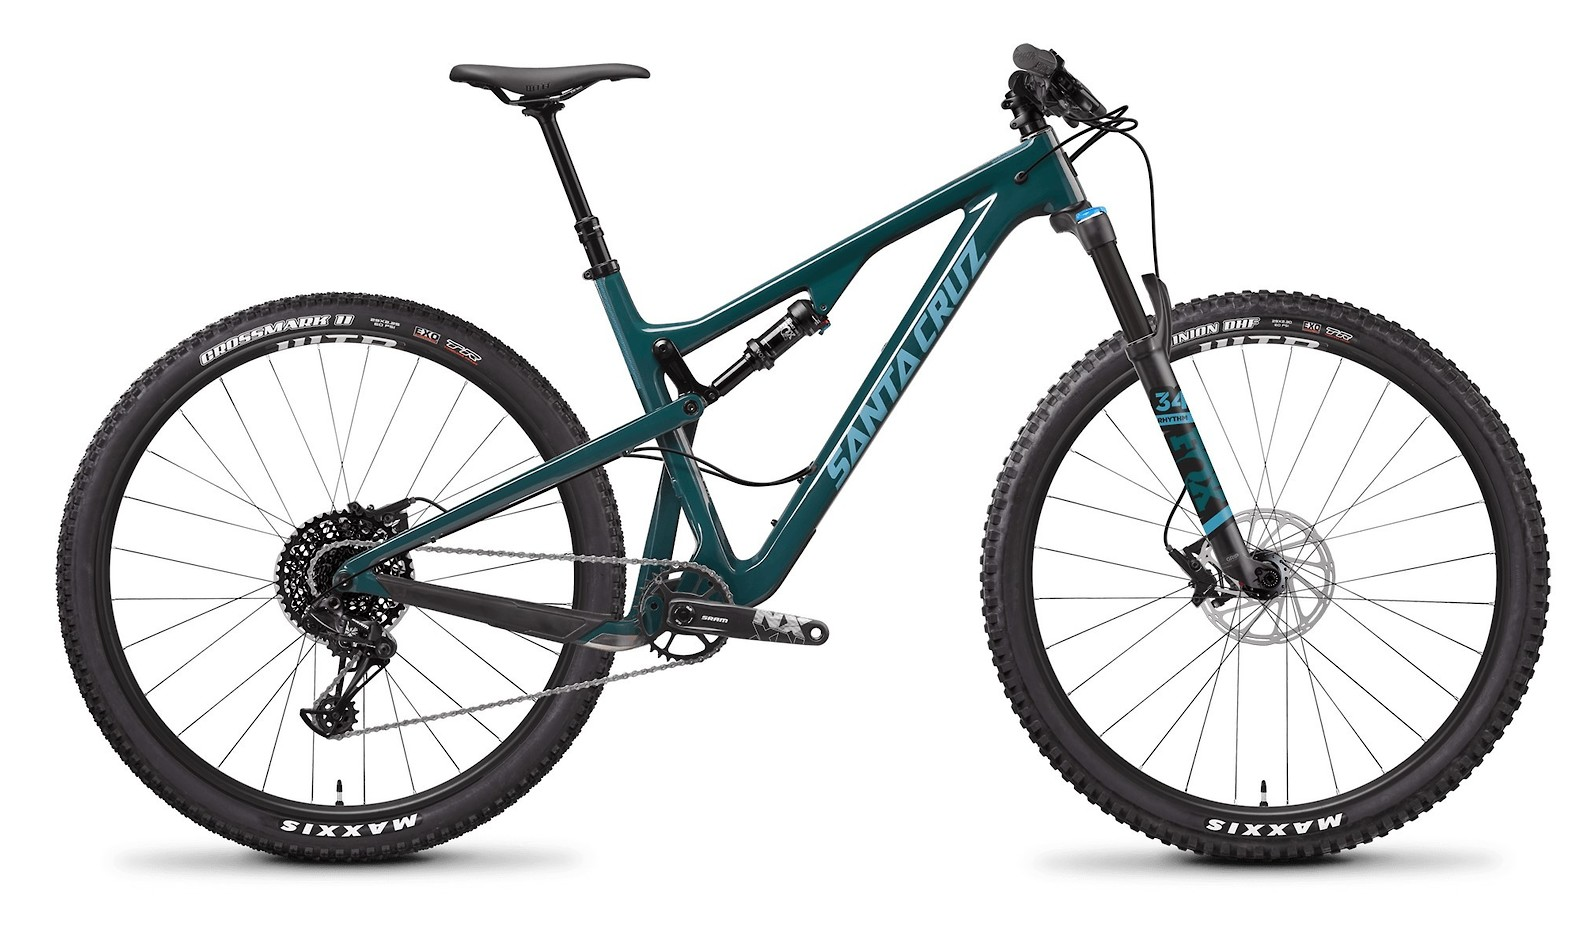 Tallboy Carbon C R Forest Green and Baby Blue